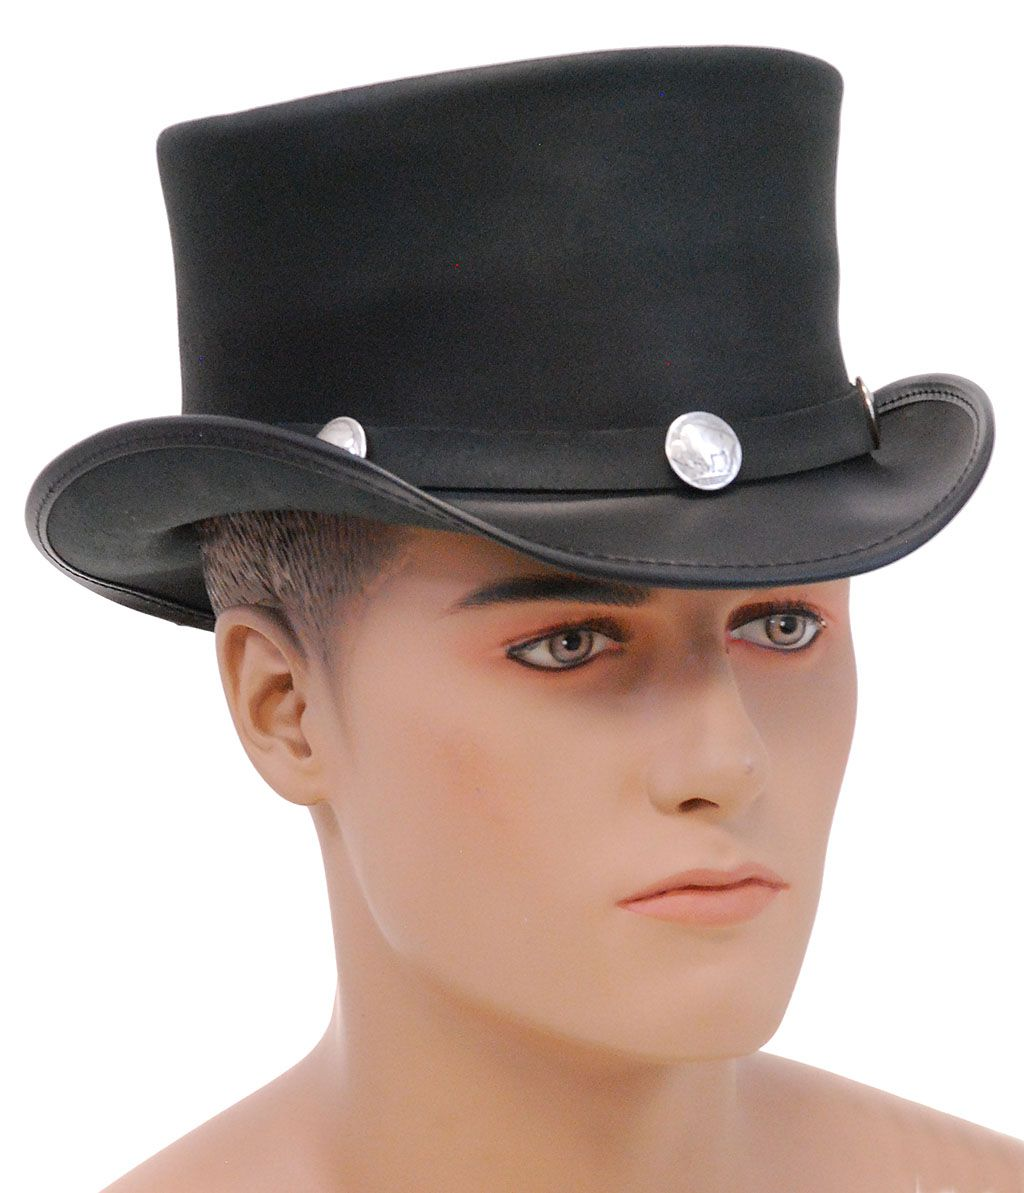 9f10650f424 SteamPunk Buffalo Nickle Black Leather Top Hat  H59TOPPER Vintage classic  black leather top hat with